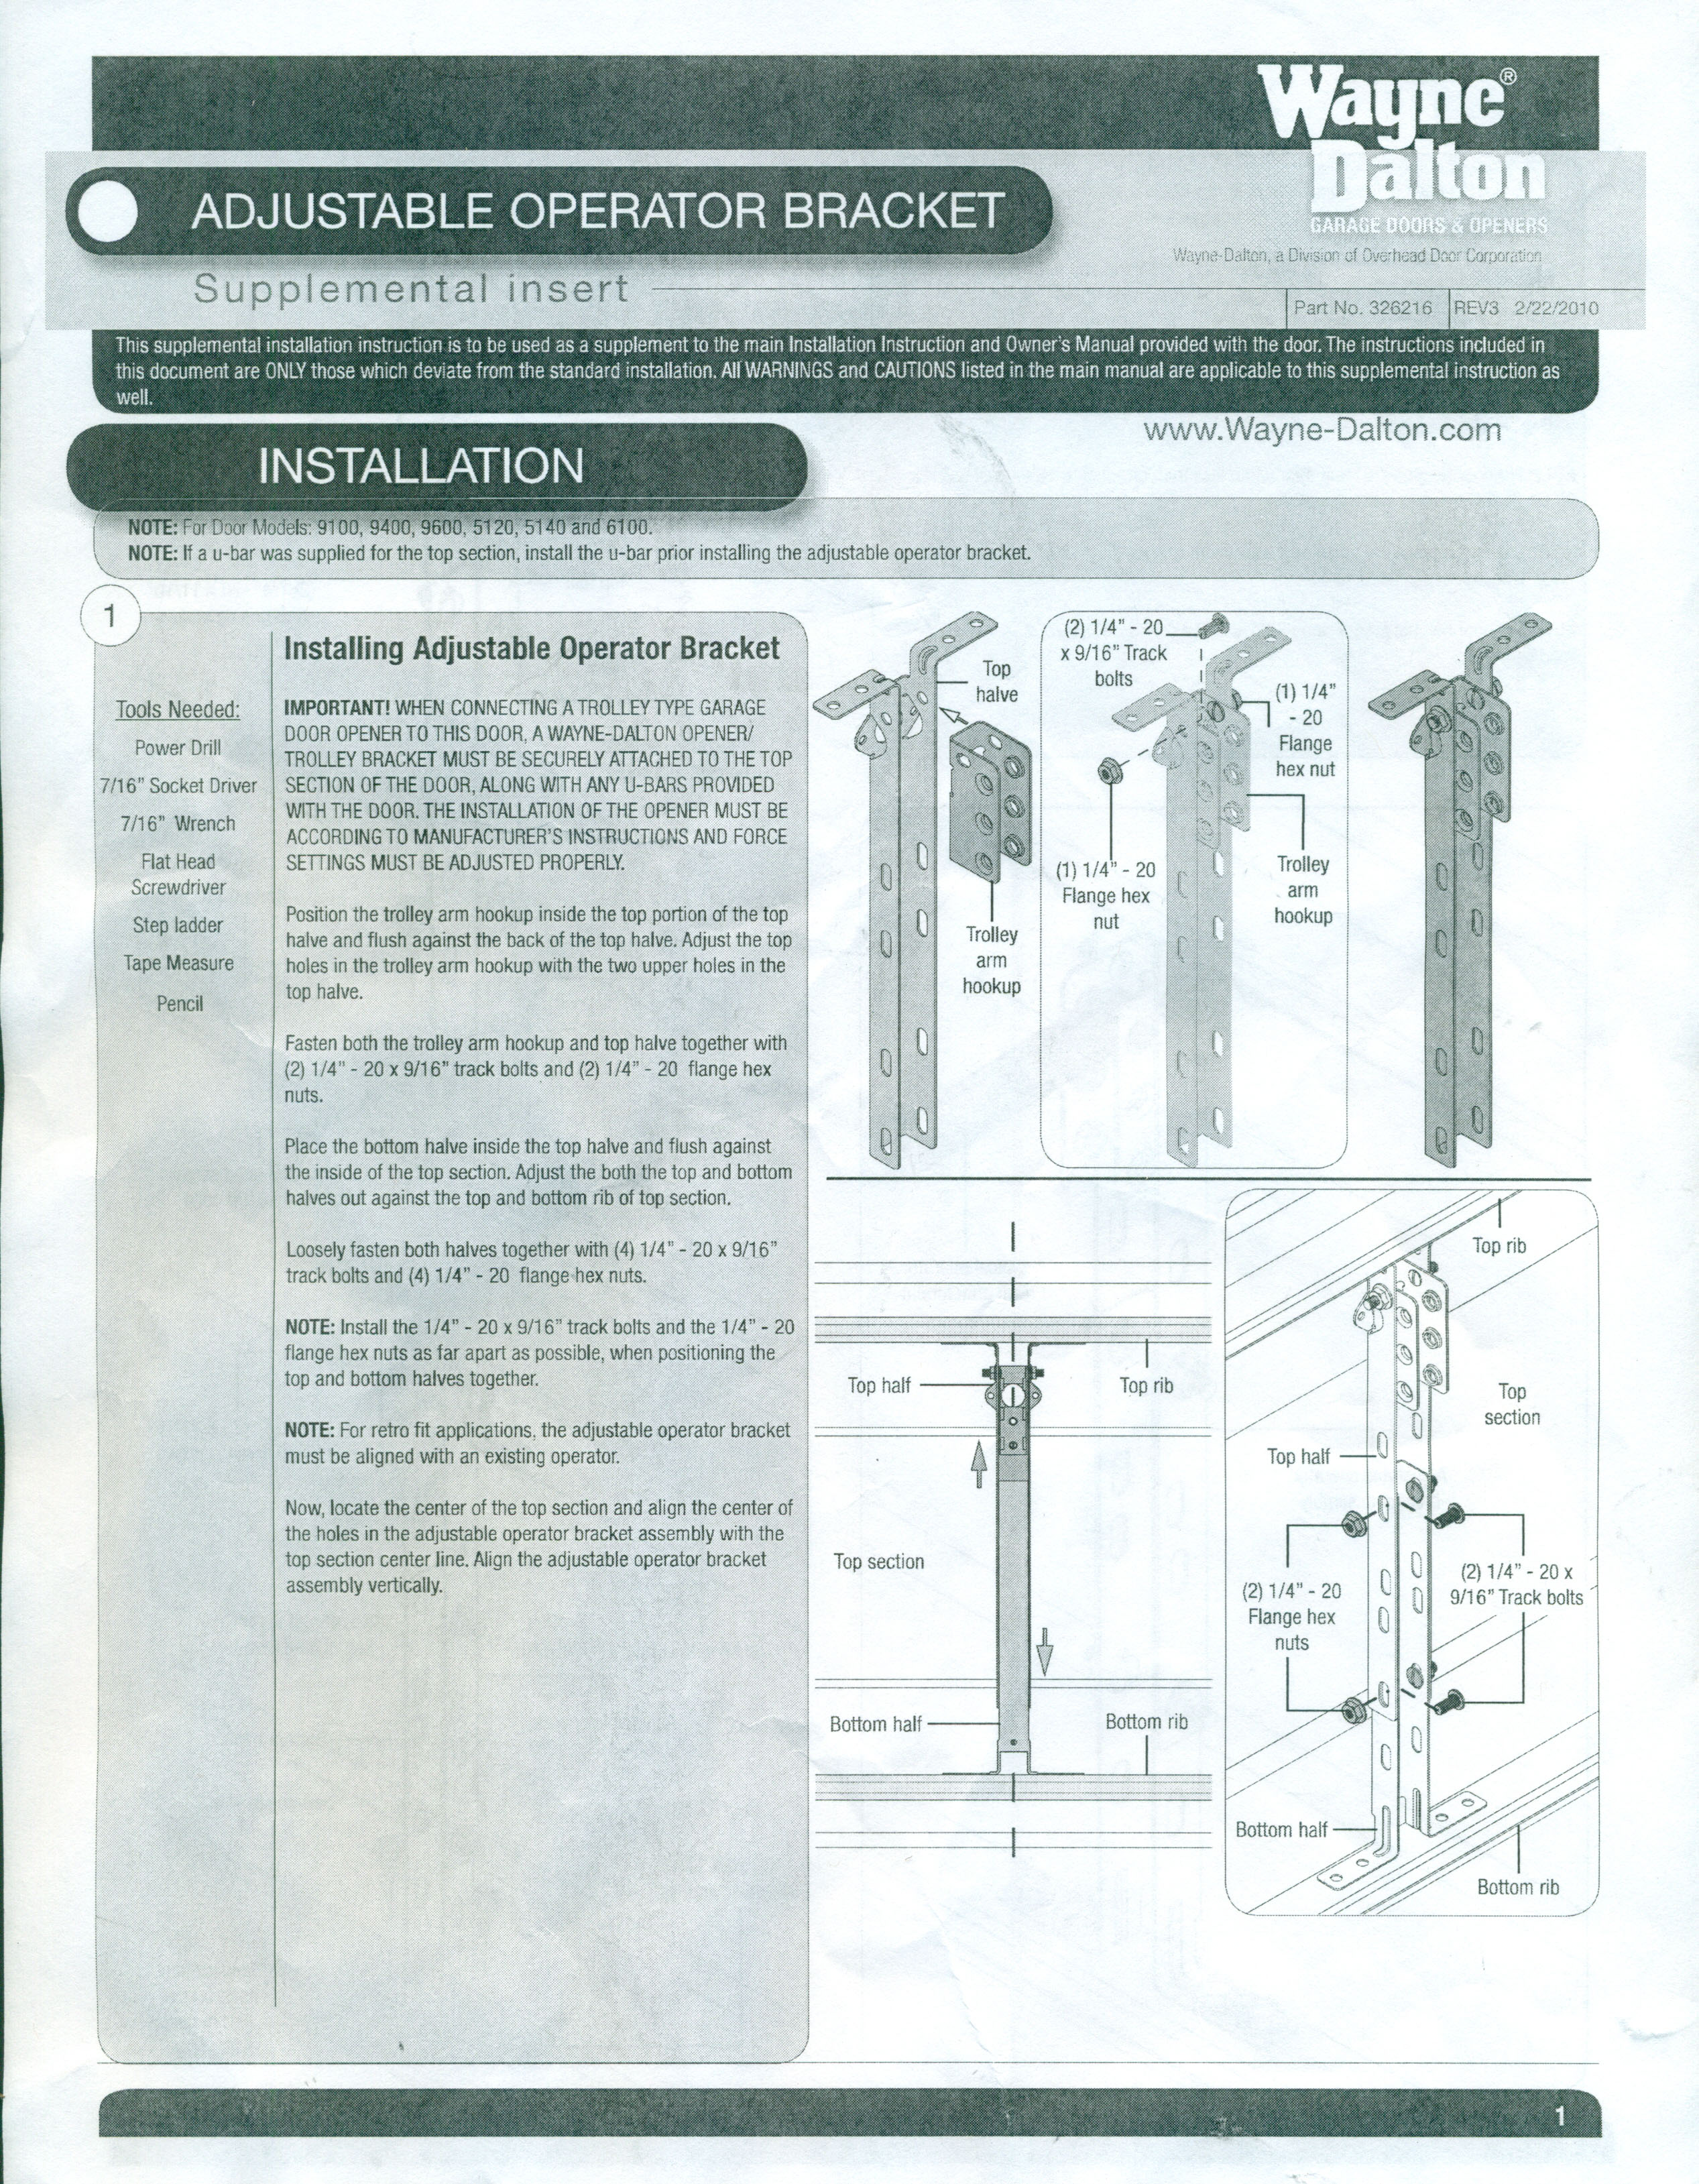 Wayne Dalton Clic Drive Wiring Diagram on